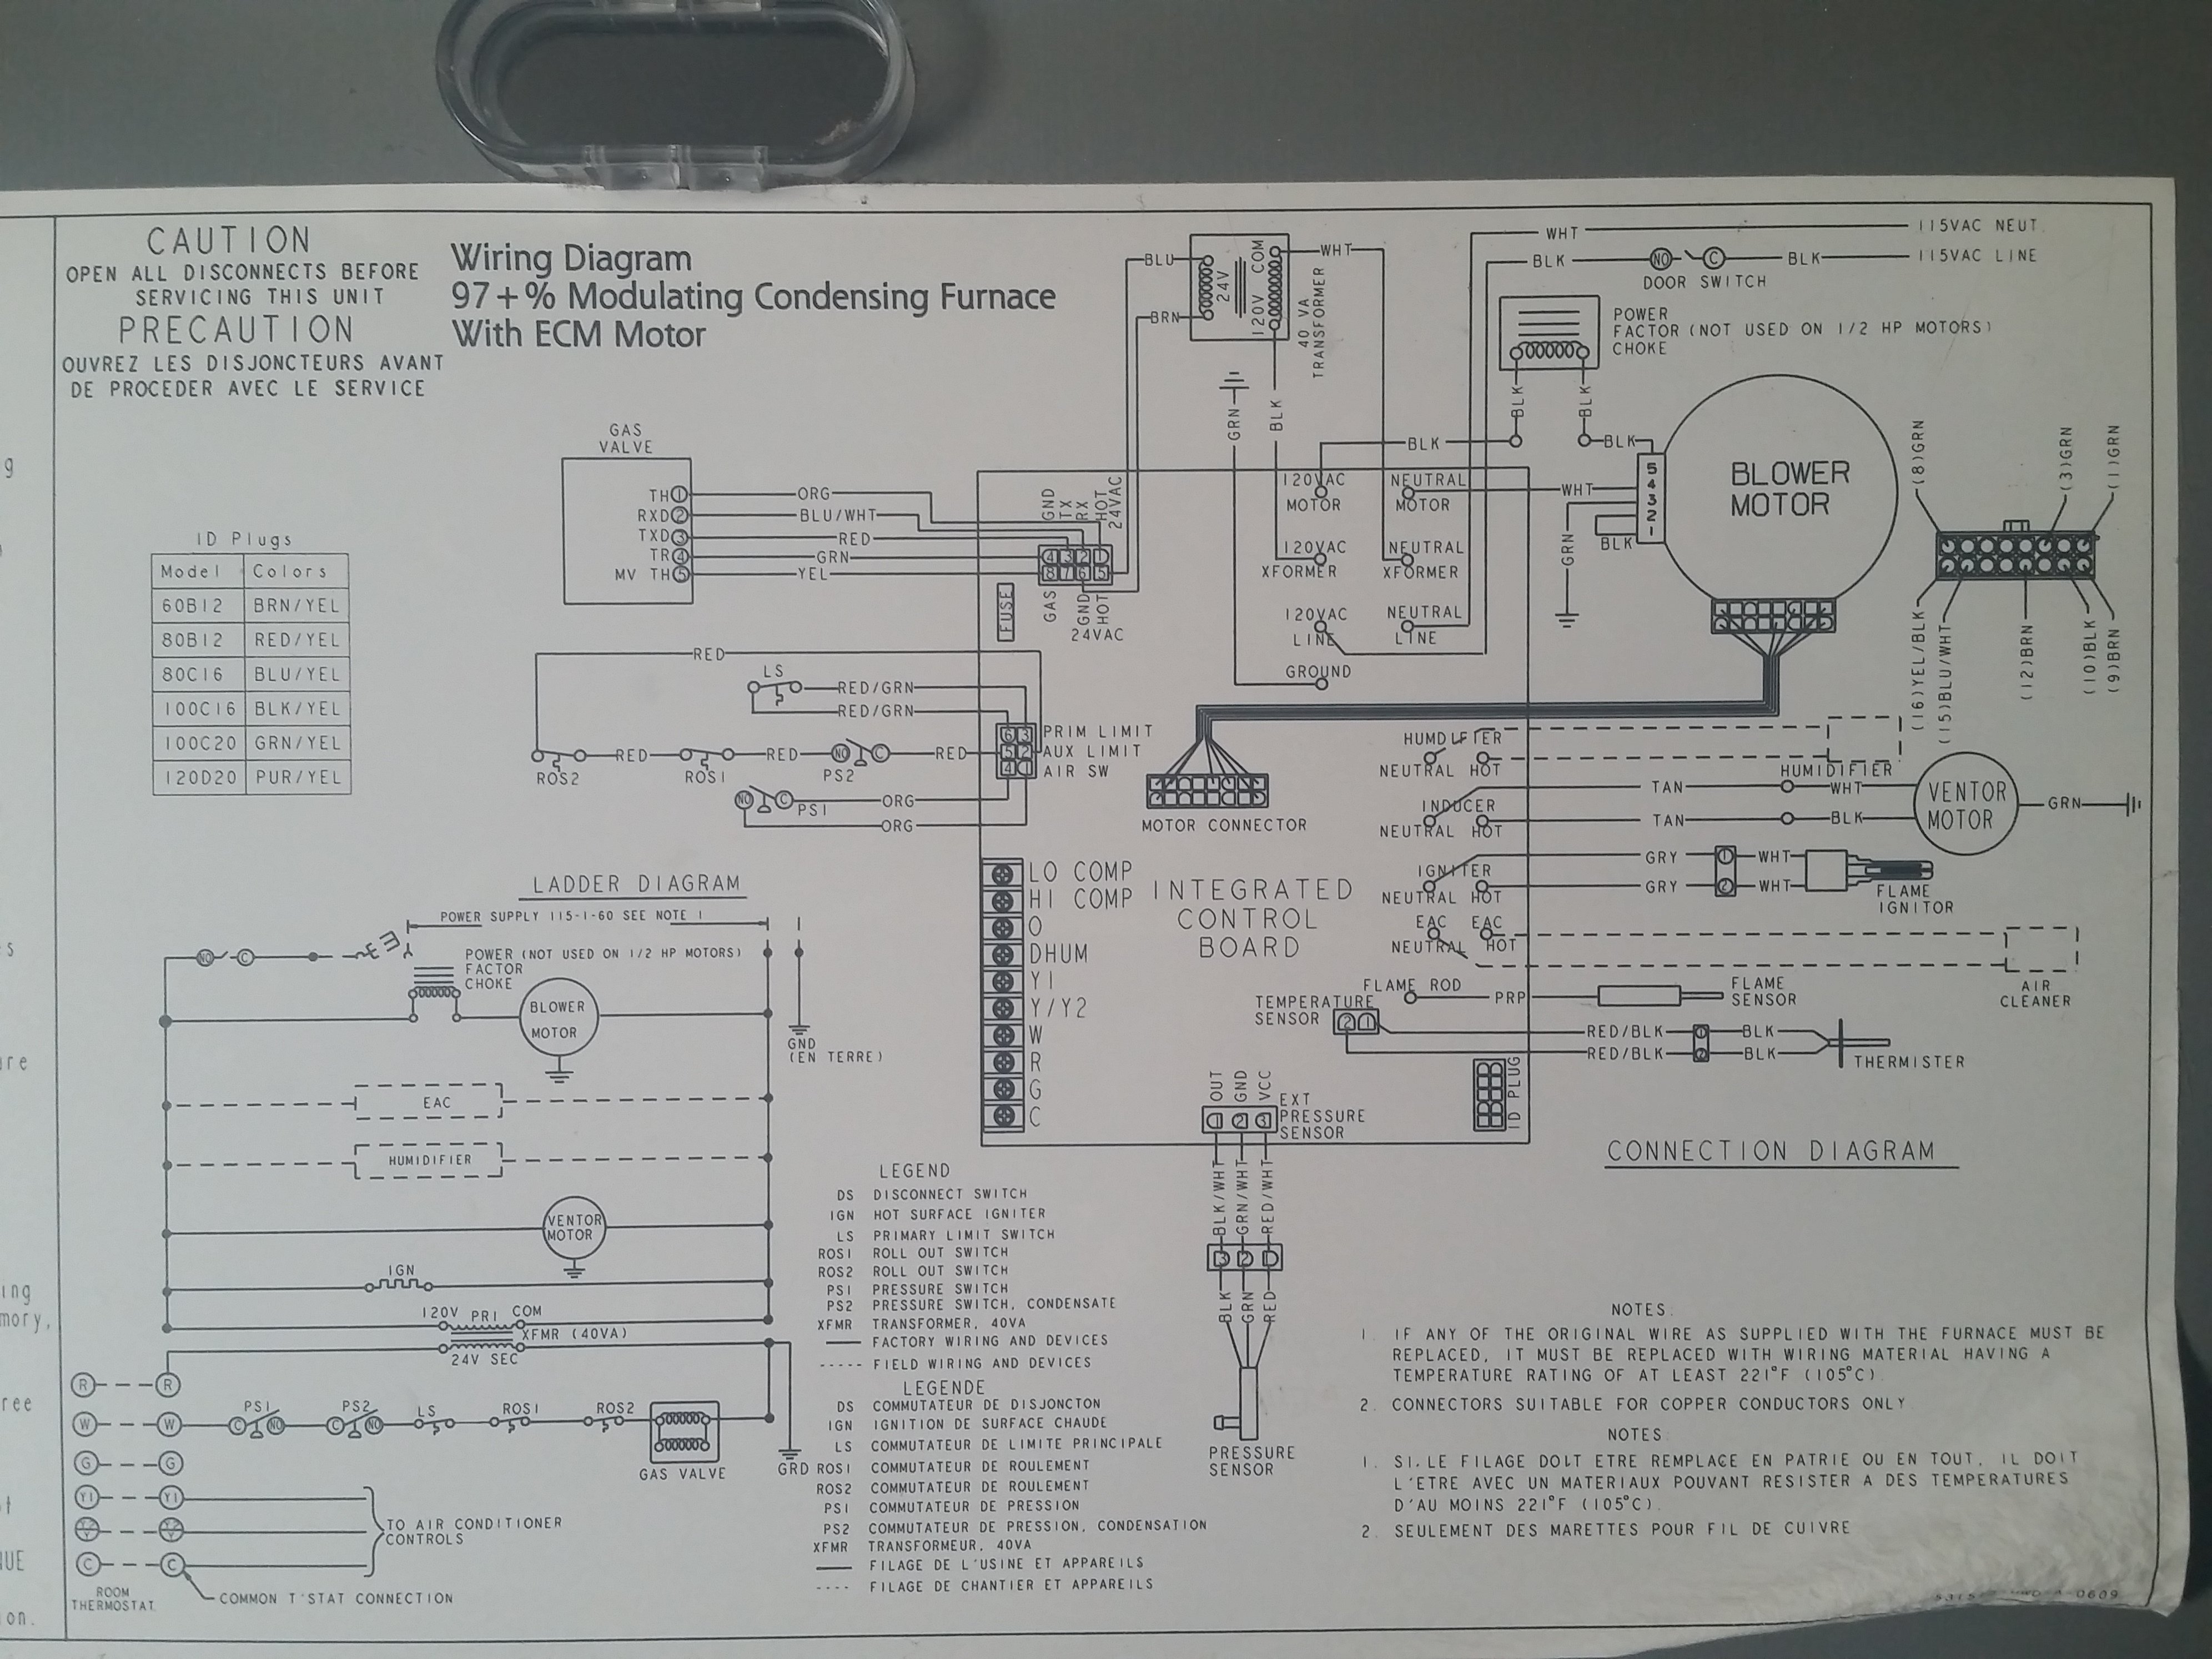 I Have A Echelon 9c Series Furnace The Air Works Fine Heat Dgaa077bdta Evcon Wiring Diagram 20151102 140359